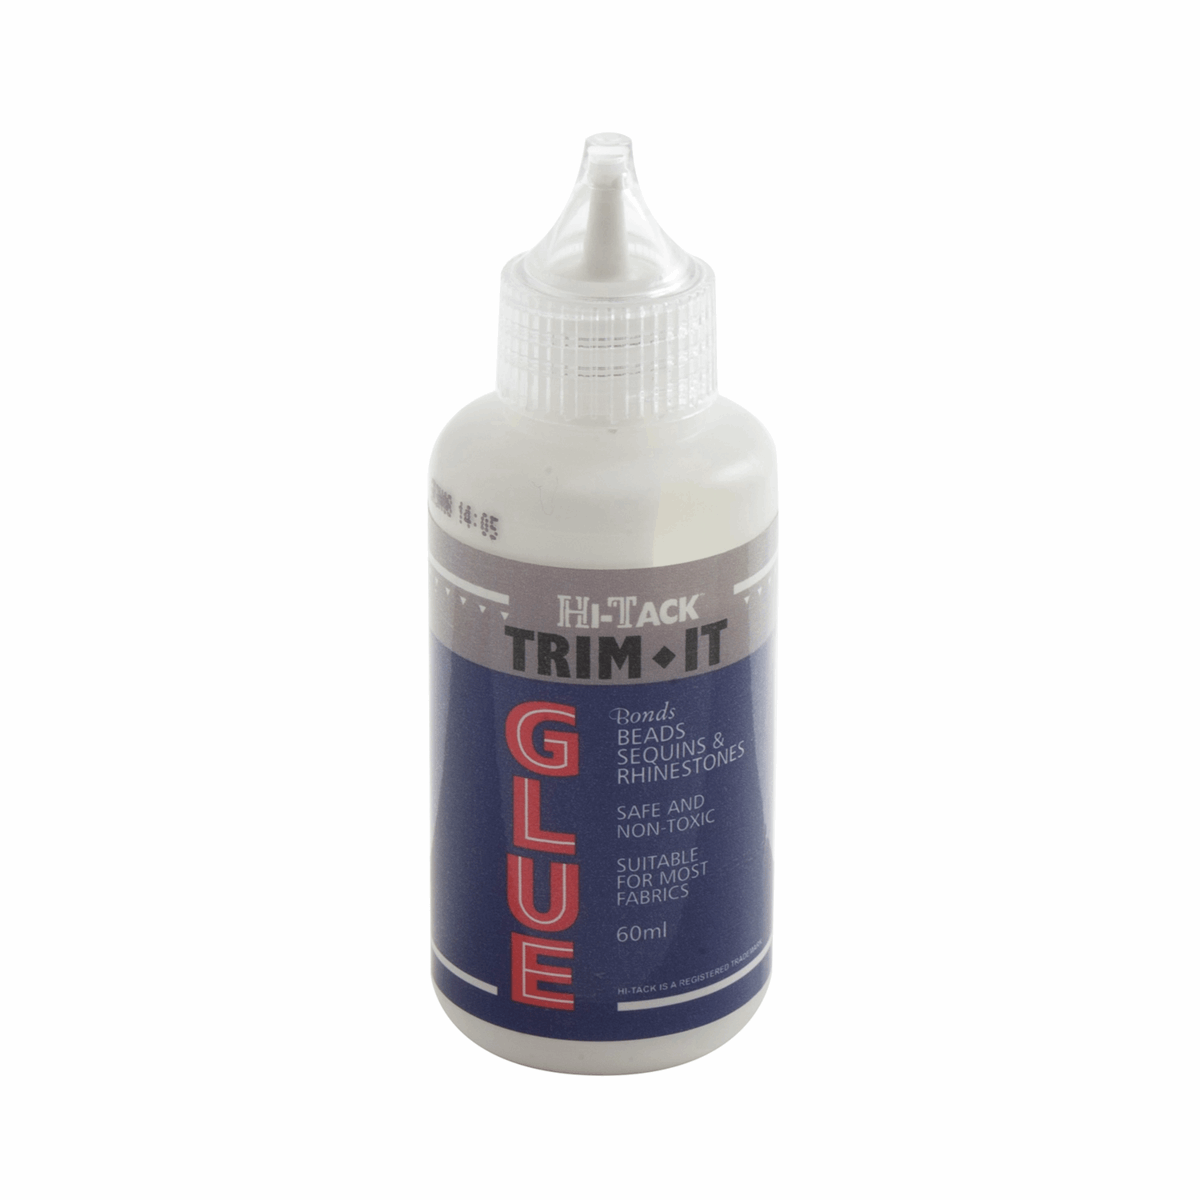 Hi-Tack Trim-It Glue - 60ml